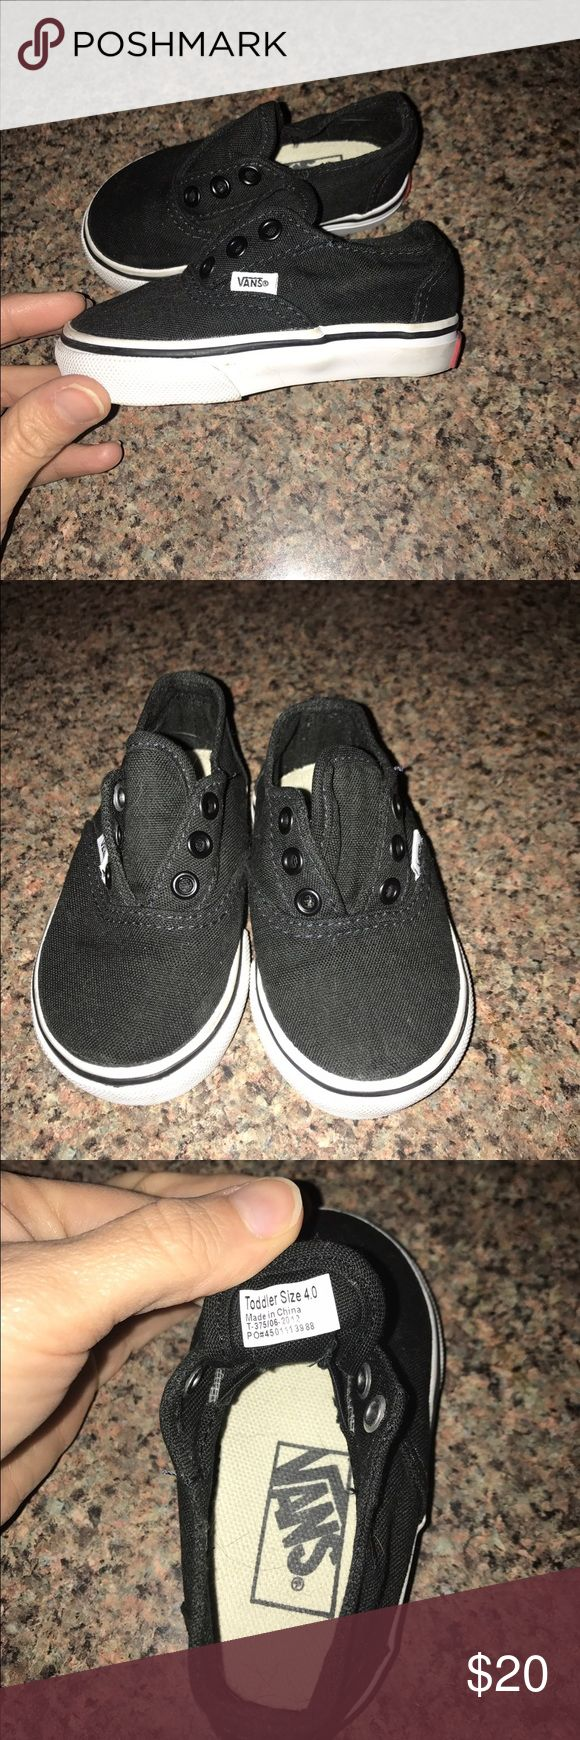 Toddler size 4.0 vans tennis shoes Does not require shoestrings. Has elastic stretch panels in shoes. Worn one time. No stains or signs of use. Very cute! Smoke free home! Vans Shoes Sneakers